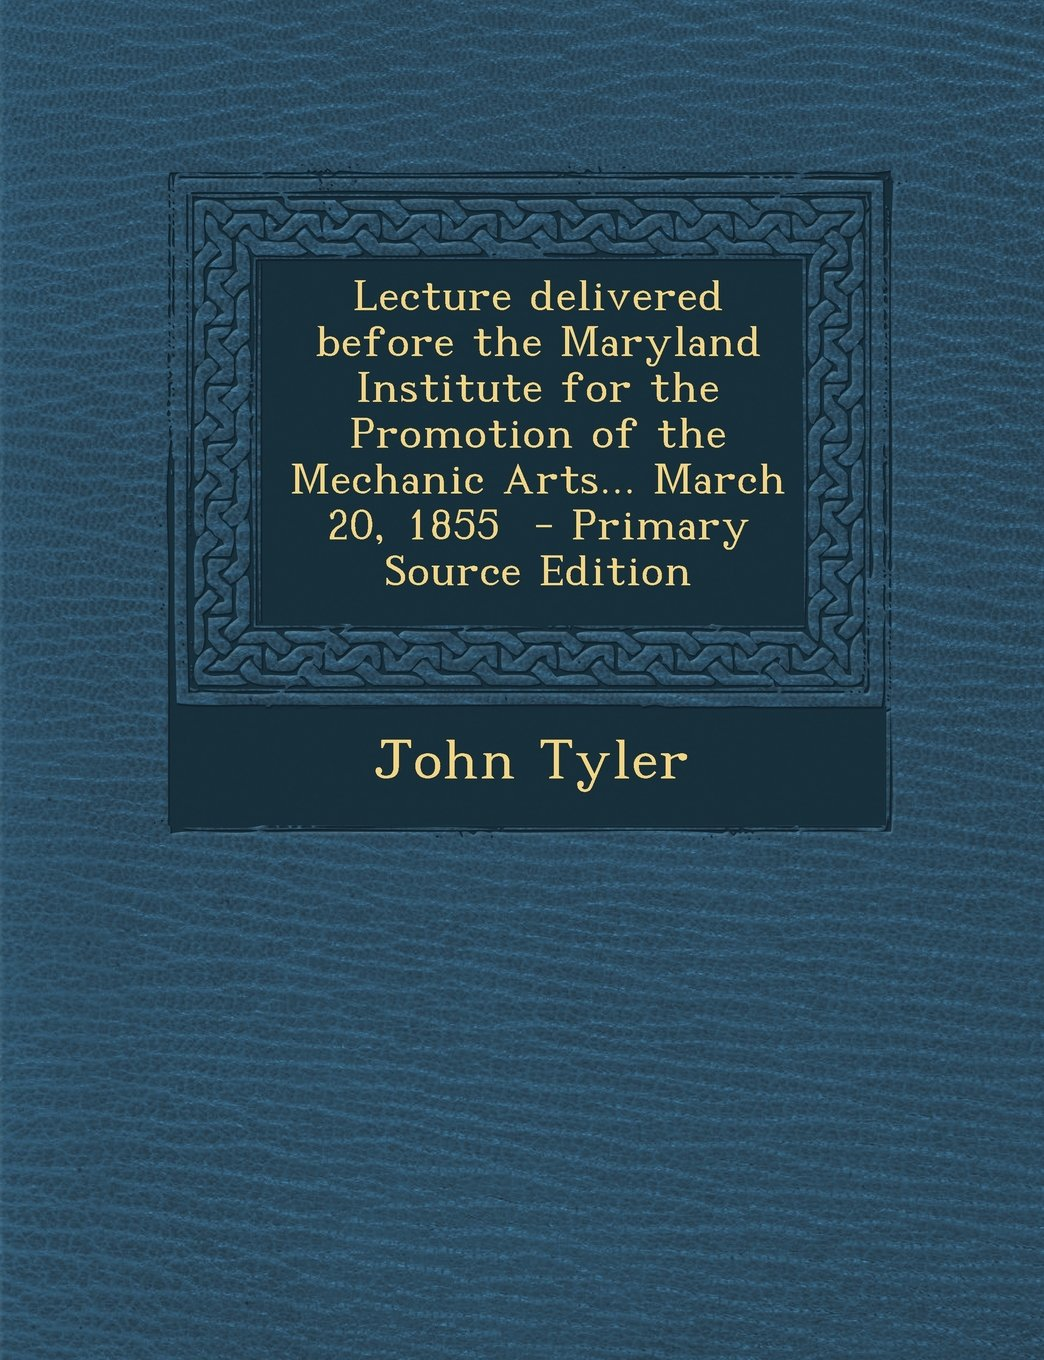 Lecture Delivered Before the Maryland Institute for the Promotion of the Mechanic Arts... March 20, 1855 - Primary Source Edition ebook